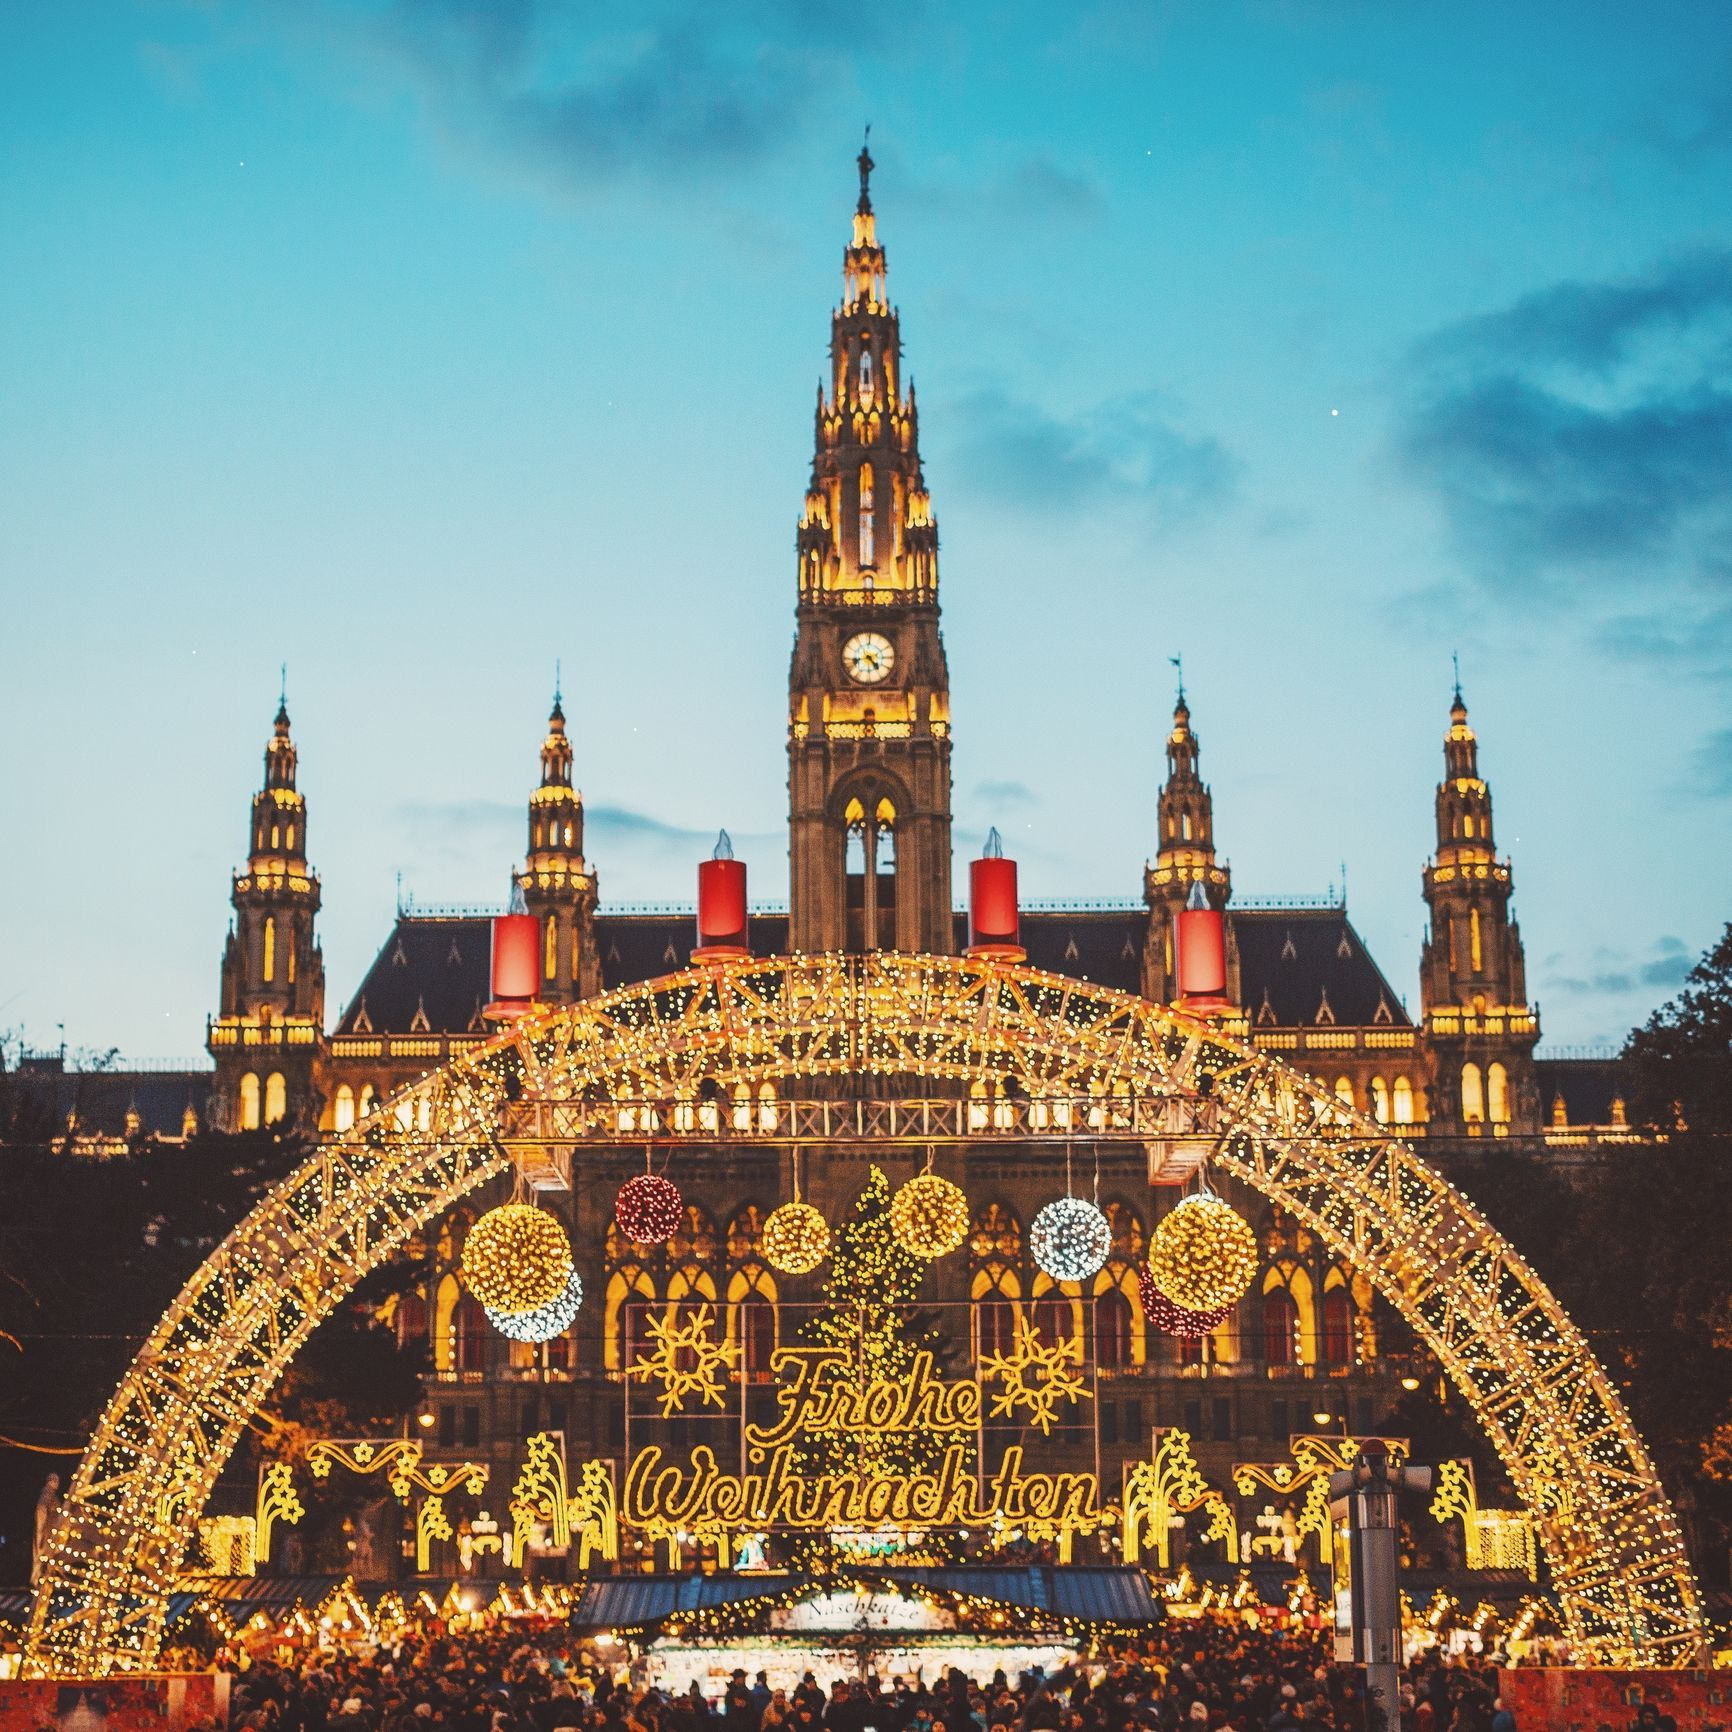 "<p>The Christmas market in Austria's capital <a href=""https://www.austria.info/uk/things-to-do/skiing-and-winter/christmas-markets/christmas-markets-in-vienna"" data-href=""https://www.austria.info/uk/things-to-do/skiing-and-winter/christmas-markets/christmas-markets-in-vienna"" target=""_blank"">dates back to 1298</a>. There are now 20 official Advent markets with the most iconic, the Viennese Christmas market, featuring 154 stalls and being situated in front of the City Hall. This year, the market opened on 17th November and is staying put until Boxing Day.</p><p>Flights to Vienna from London Luton airport start from around £112 in the weekdays of December and both hostels and apartments can be super cheap. For hostels, there is the Wombats City Hostel, which costs from £16 for a dorm bed and from £19 for a private room, according to <a href=""https://www.hostelworld.com/hosteldetails.php/Wombats-City-Hostel-Vienna-at-the-Naschmarkt/Vienna/45674?dateFrom=2017-12-01&amp&#x3B;dateTo=2017-12-04&amp&#x3B;number_of_guests=2&amp&#x3B;sc_pos=2"" data-href=""https://www.hostelworld.com/hosteldetails.php/Wombats-City-Hostel-Vienna-at-the-Naschmarkt/Vienna/45674?dateFrom=2017-12-01&amp&#x3B;dateTo=2017-12-04&amp&#x3B;number_of_guests=2&amp&#x3B;sc_pos=2"" target=""_blank"">Hostel World</a>. For apartments, <a href=""https://www.airbnb.co.uk/rooms/2605925?wl_source=list&amp&#x3B;wl_id=249567357&amp&#x3B;role=wishlist_public&amp&#x3B;adults=1&amp&#x3B;children=0&amp&#x3B;infants=0"" data-href=""https://www.airbnb.co.uk/rooms/2605925?wl_source=list&amp&#x3B;wl_id=249567357&amp&#x3B;role=wishlist_public&amp&#x3B;adults=1&amp&#x3B;children=0&amp&#x3B;infants=0"" target=""_blank"">check out this one-bed Airbnb</a> for two people for £35 per night.</p>"